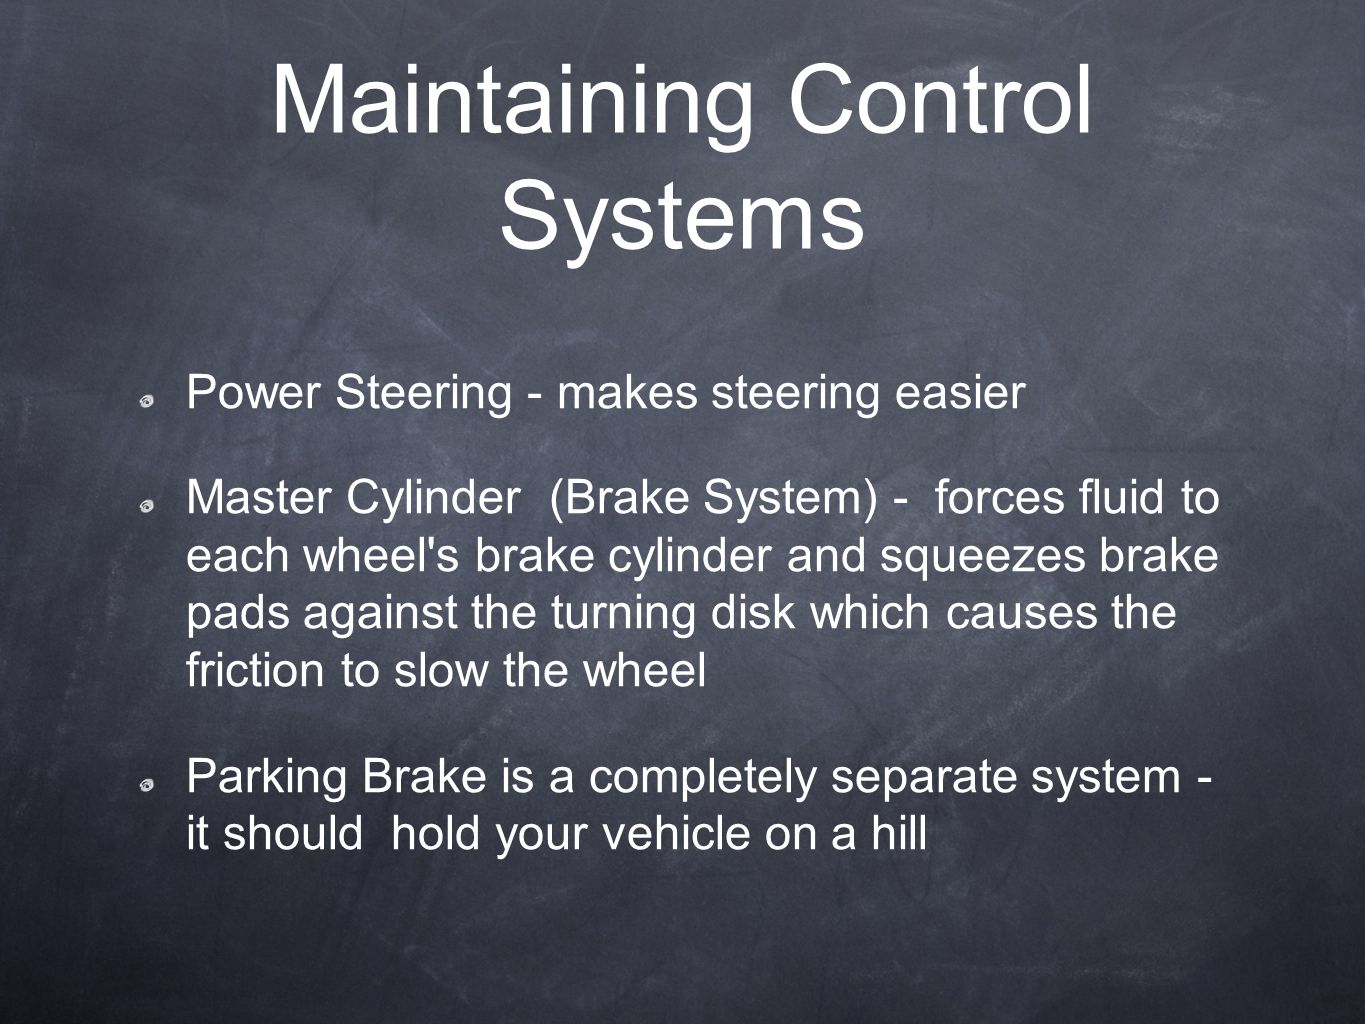 Maintaining Control Systems Power Steering - makes steering easier Master Cylinder (Brake System) - forces fluid to each wheel's brake cylinder and sq